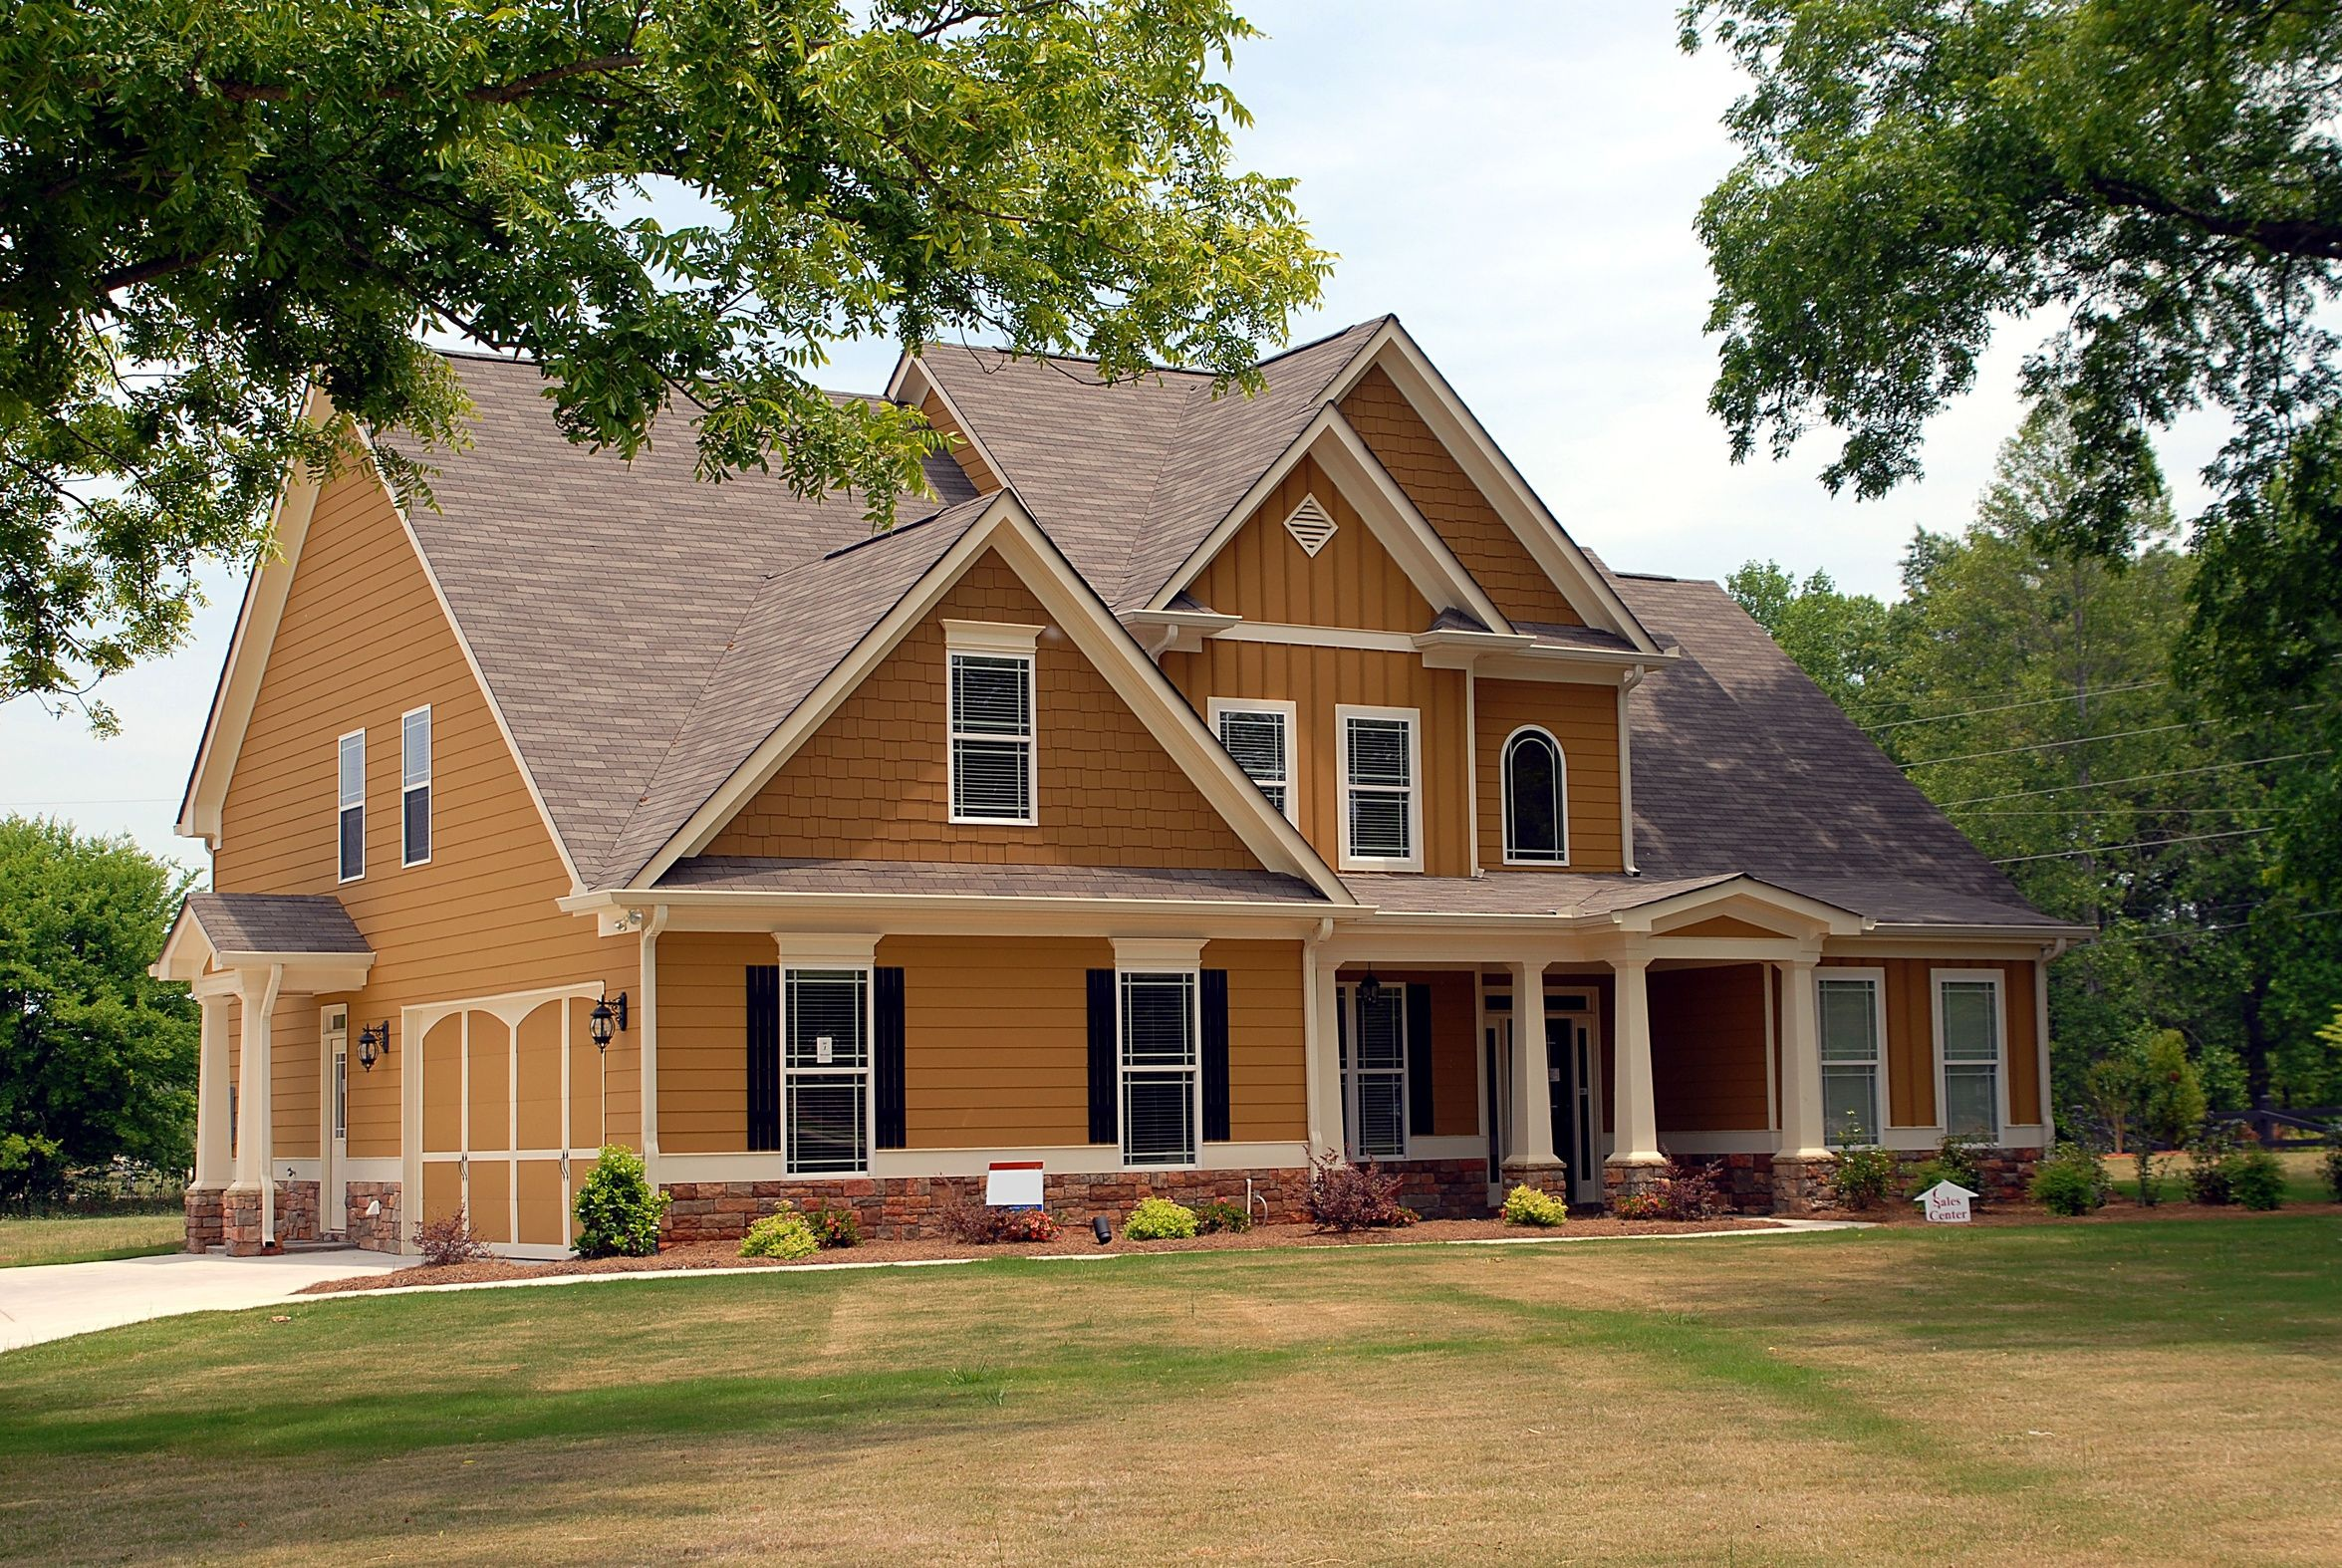 Brown exterior house paint colors looking for professional - Painting house exterior ideas set ...